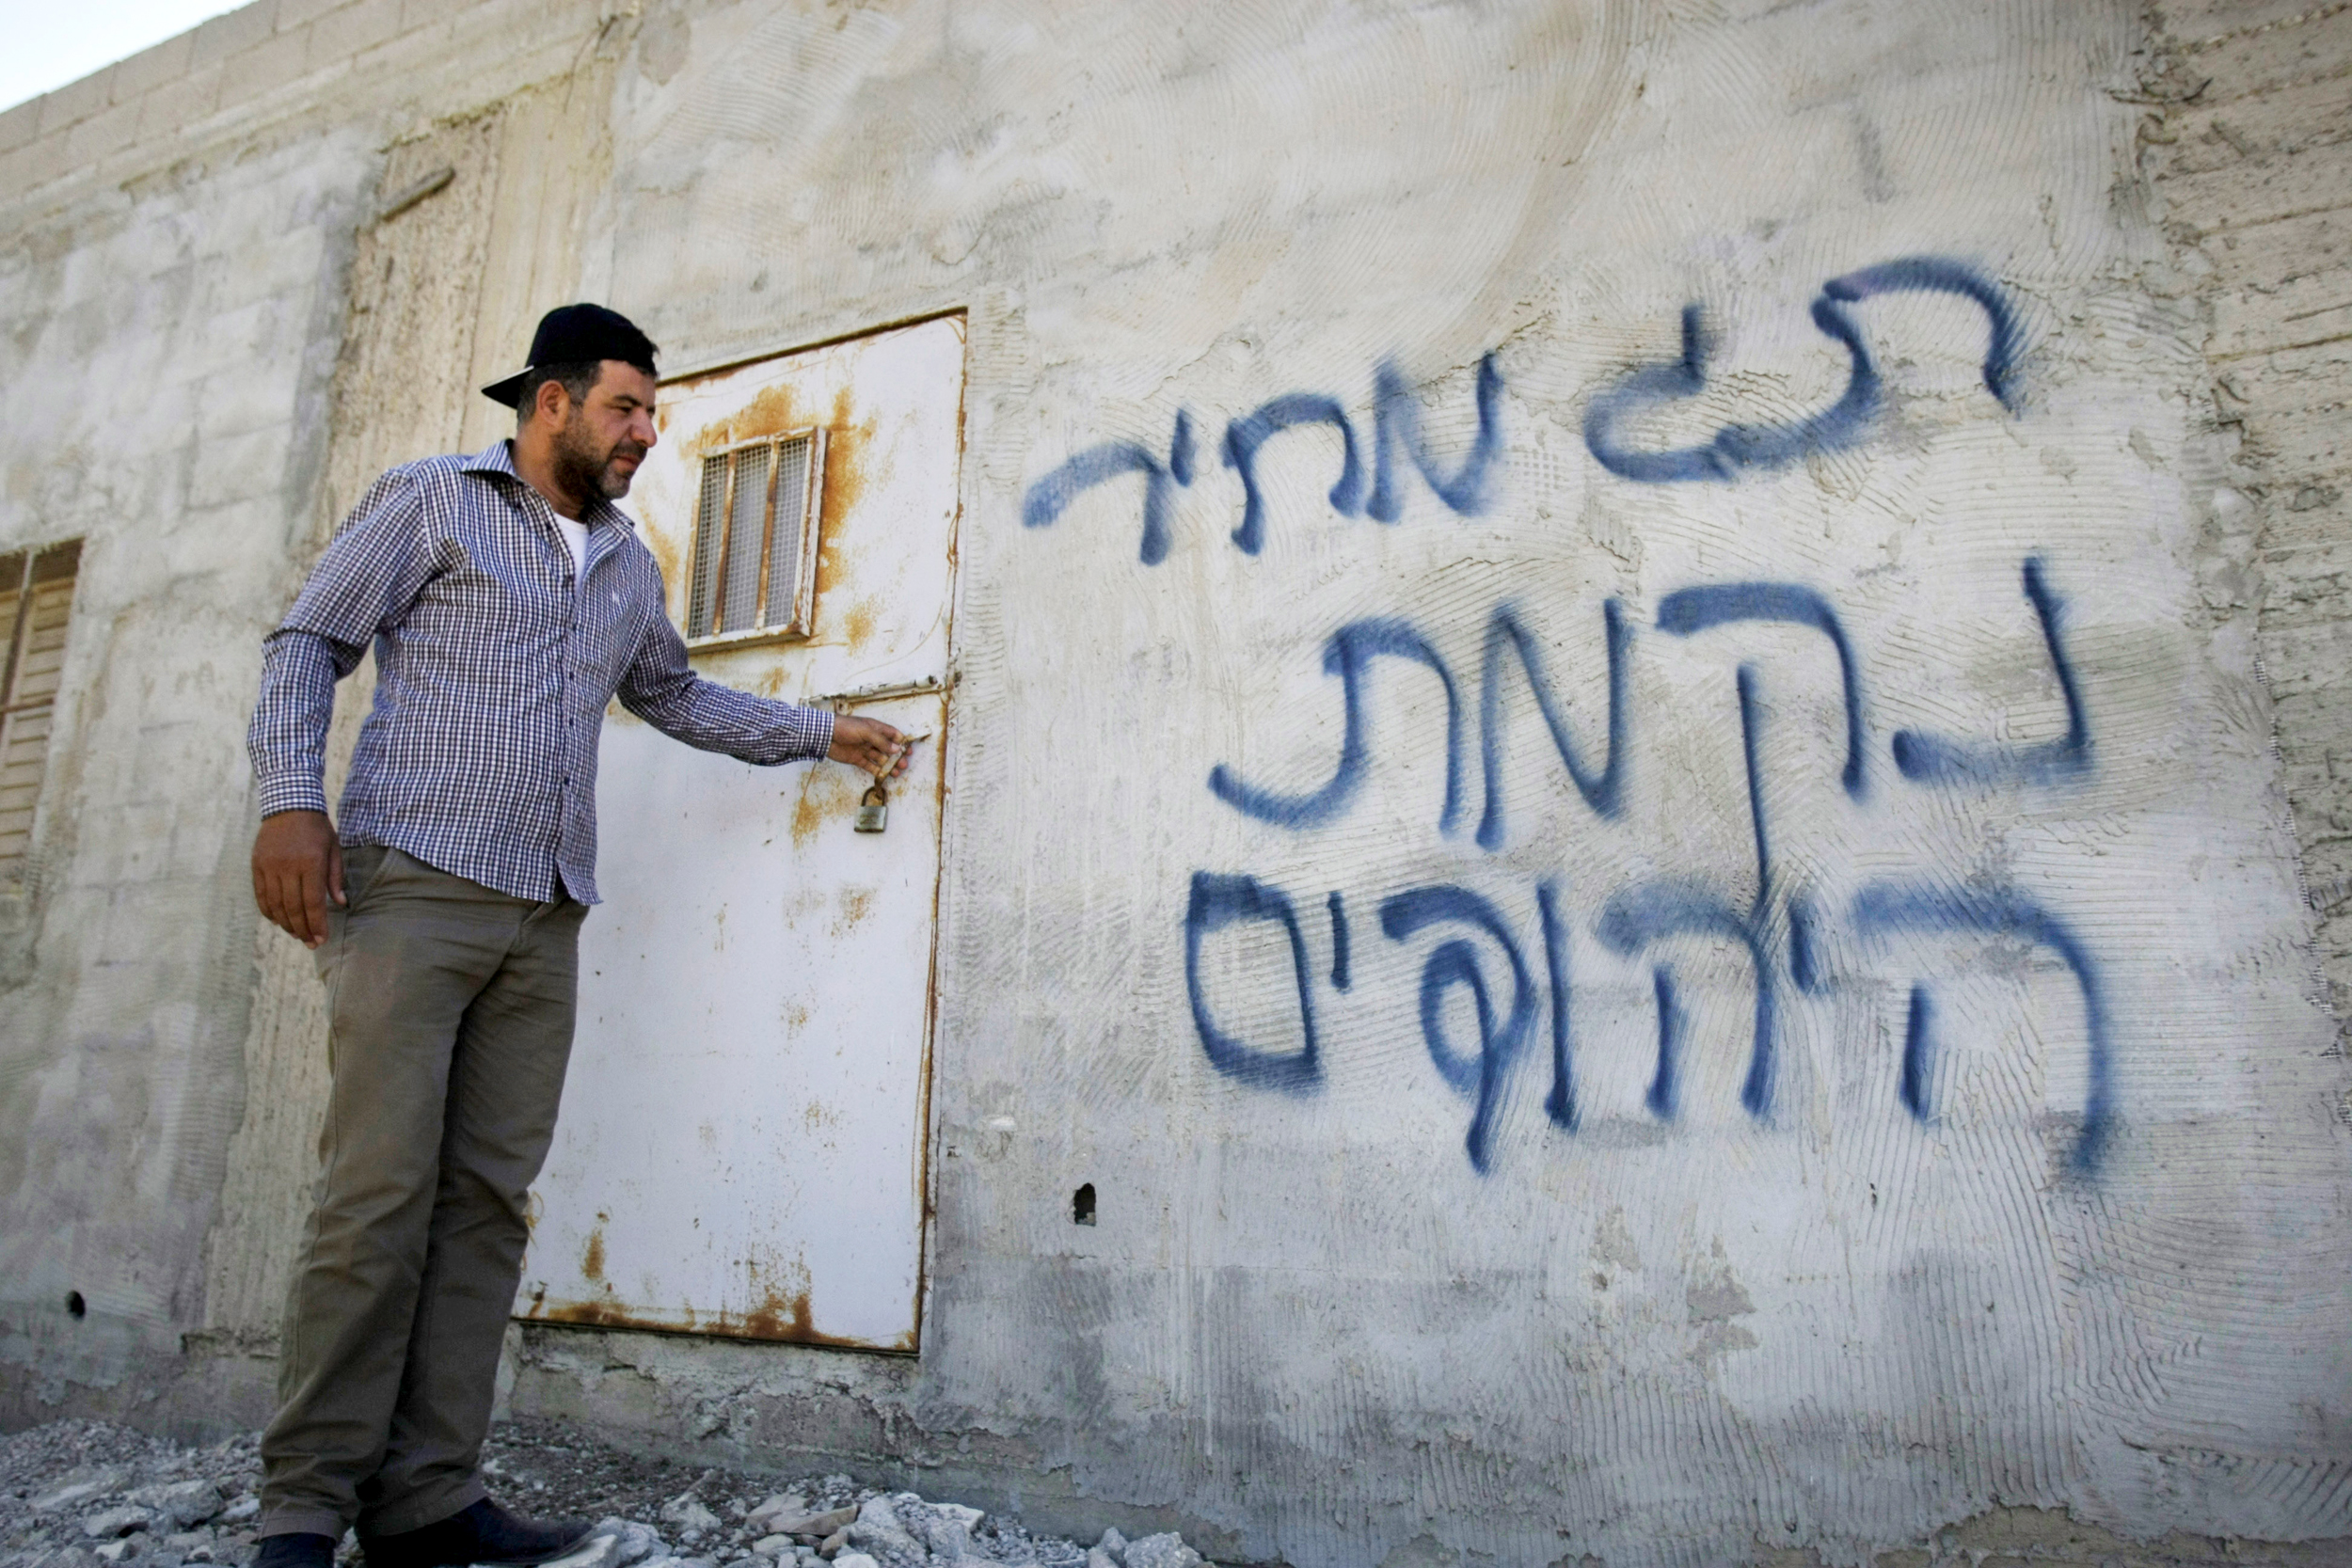 A Look at 'Price Tag' Attacks and Israeli Extremists